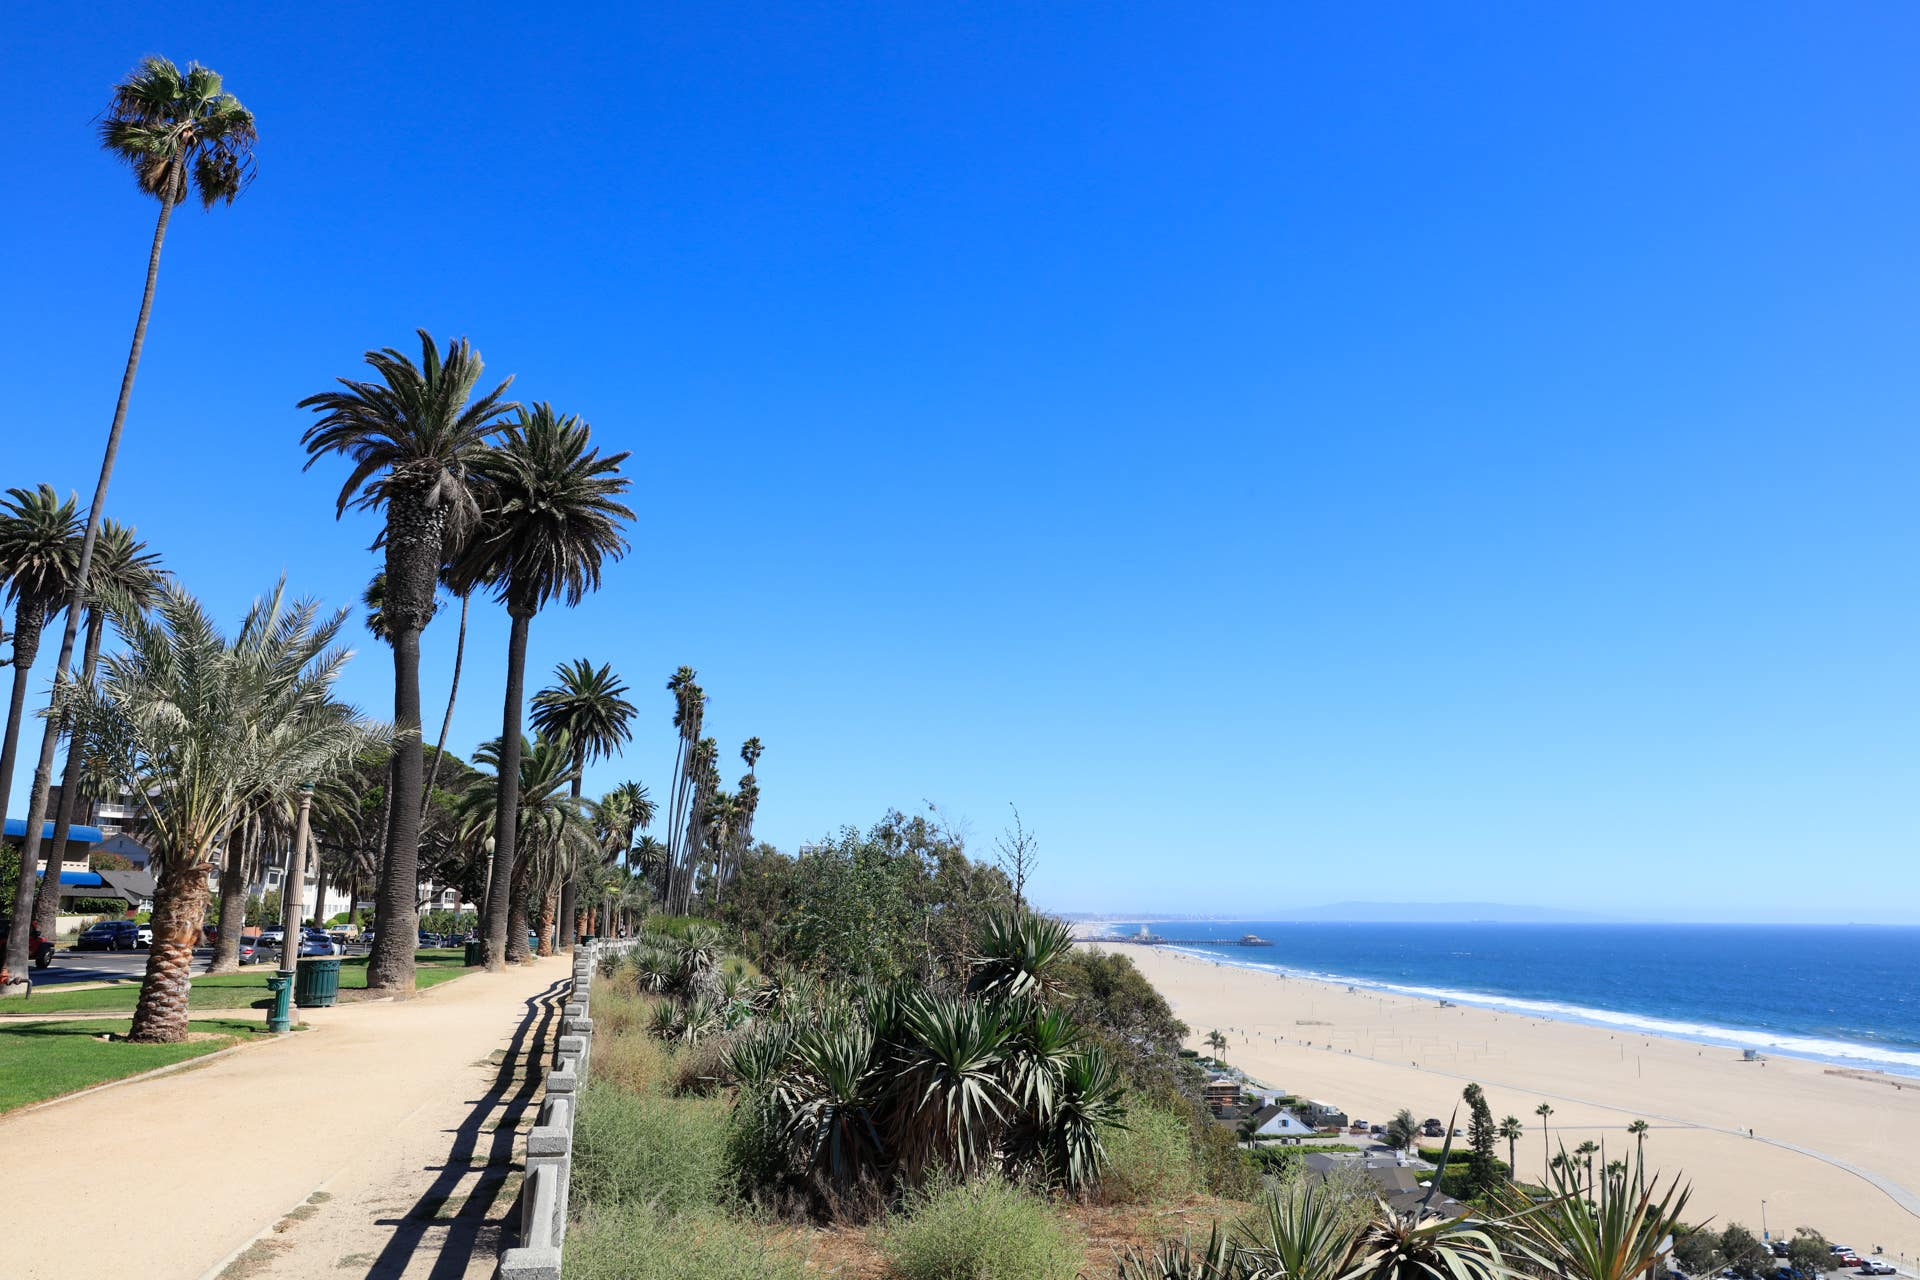 View of the Pacific Ocean at Palisades Park